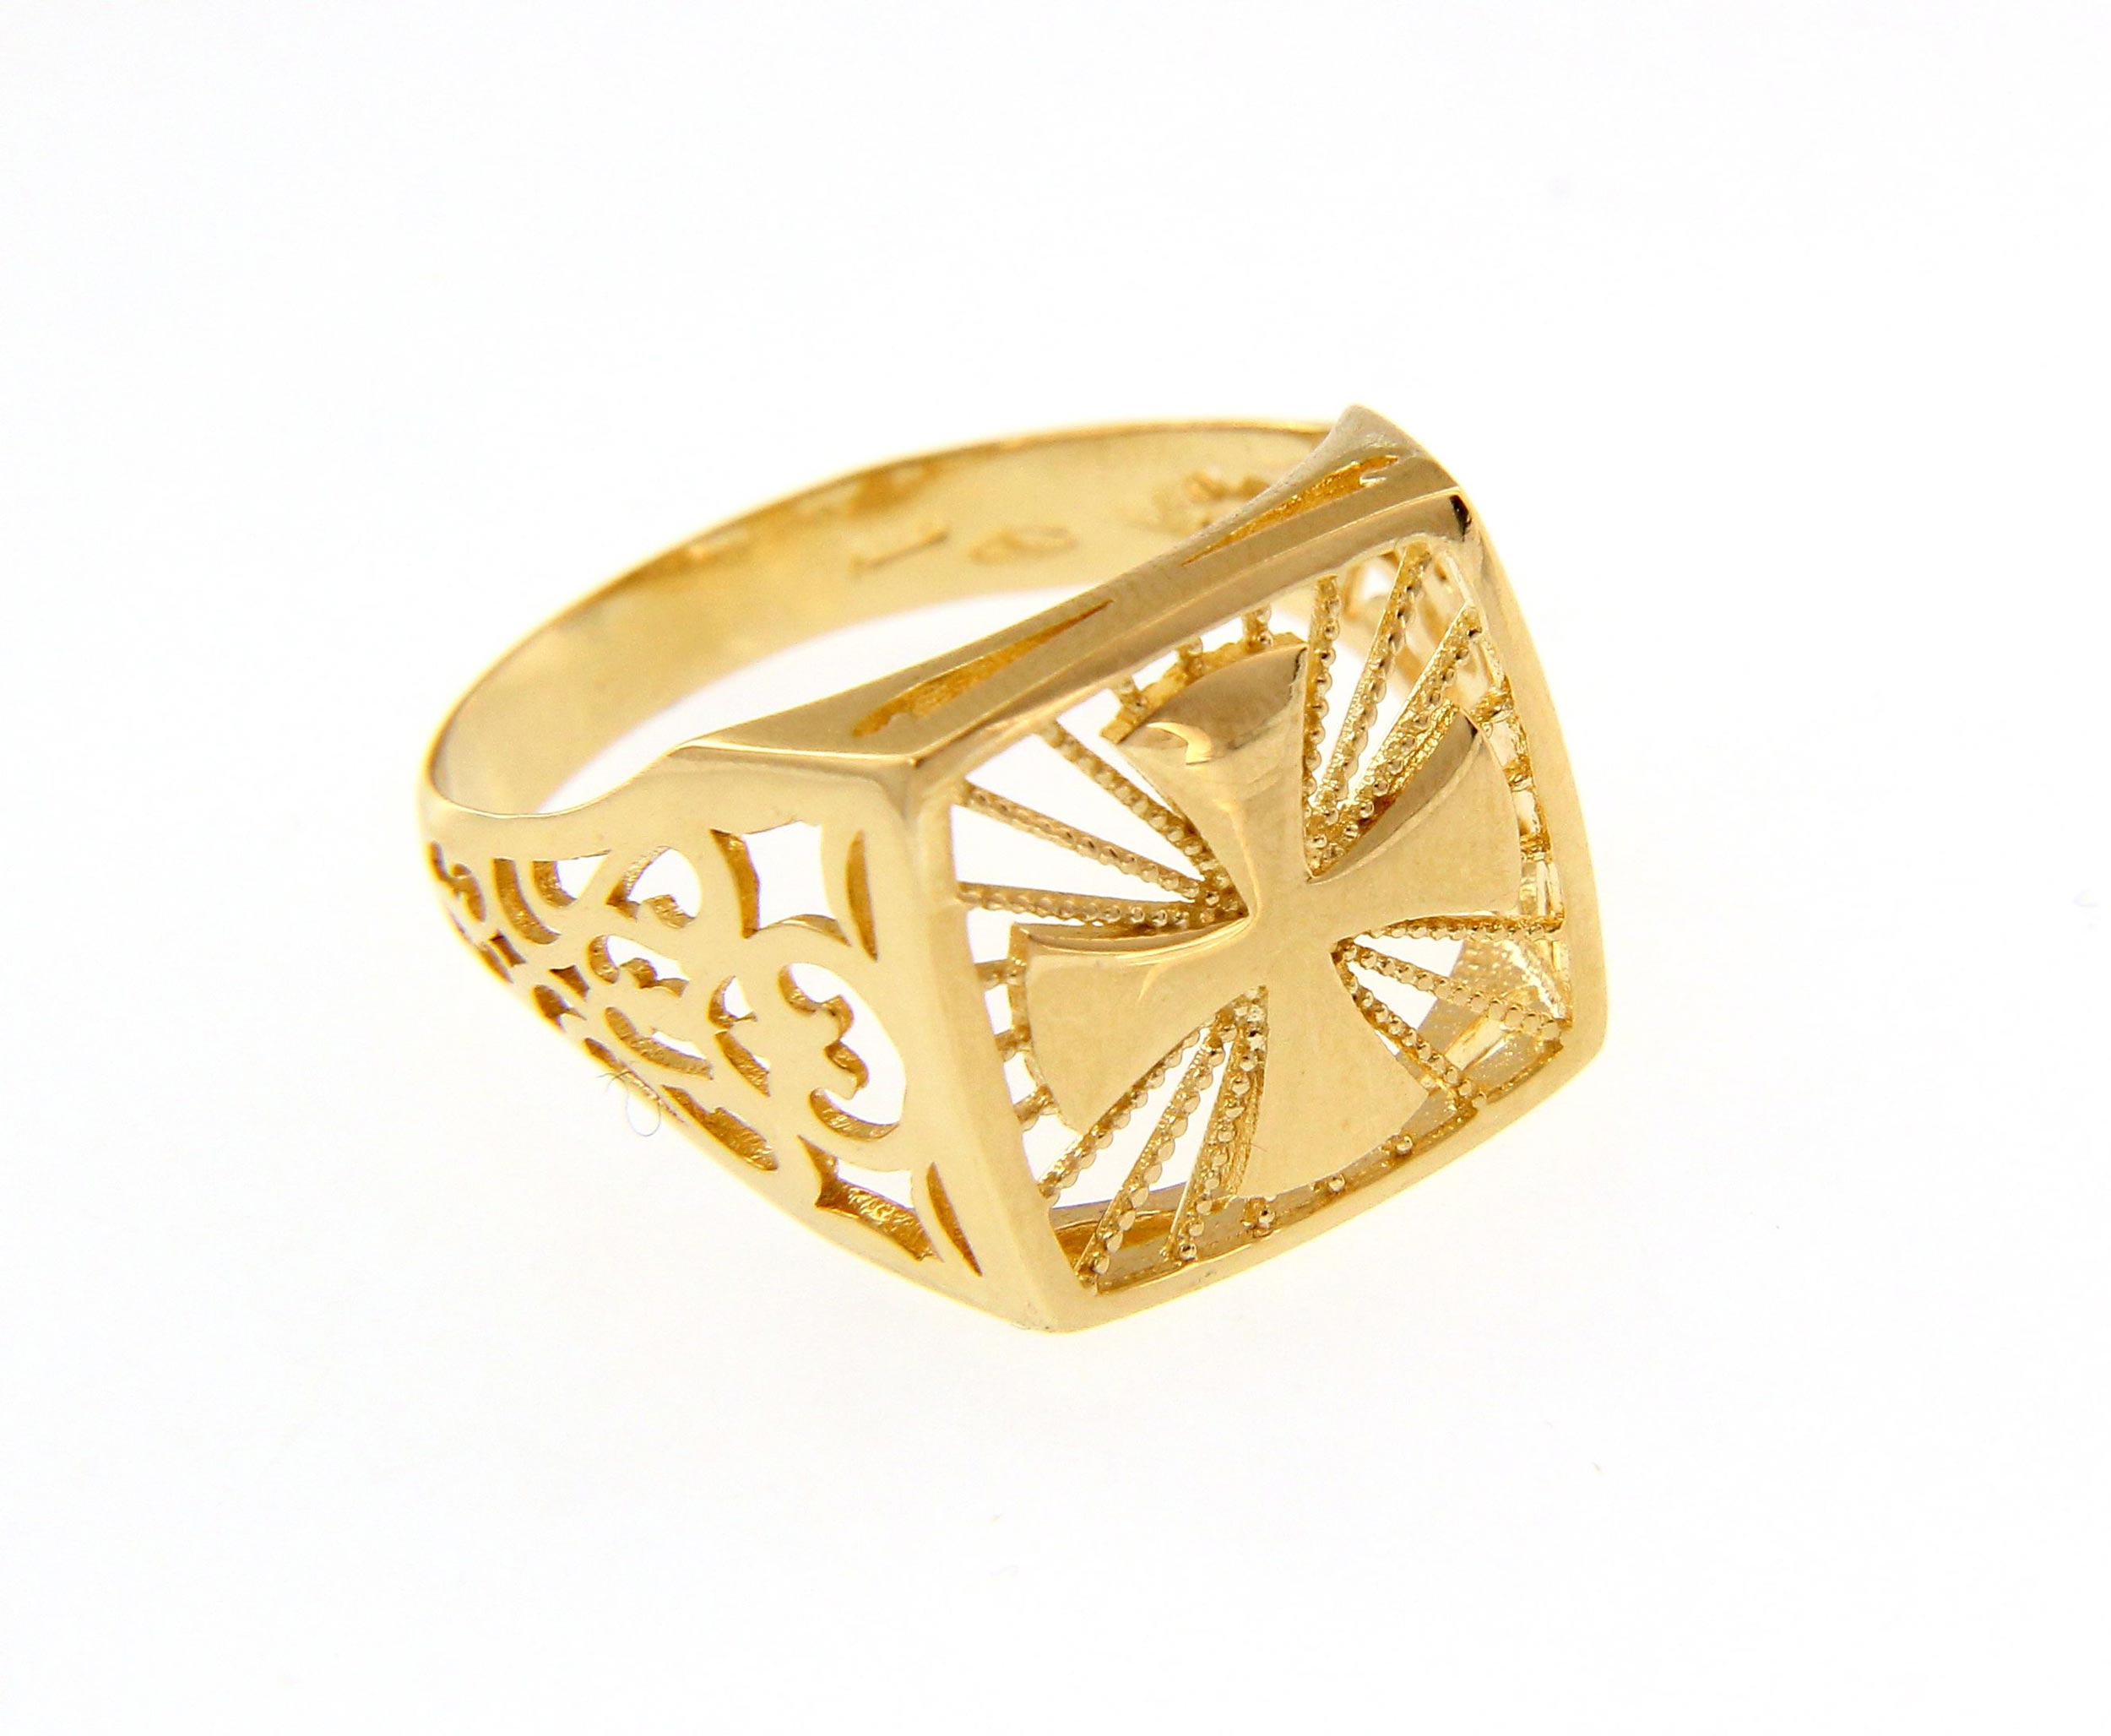 Stylish and bold 18ct Yellow gold Ring with engraved Cross